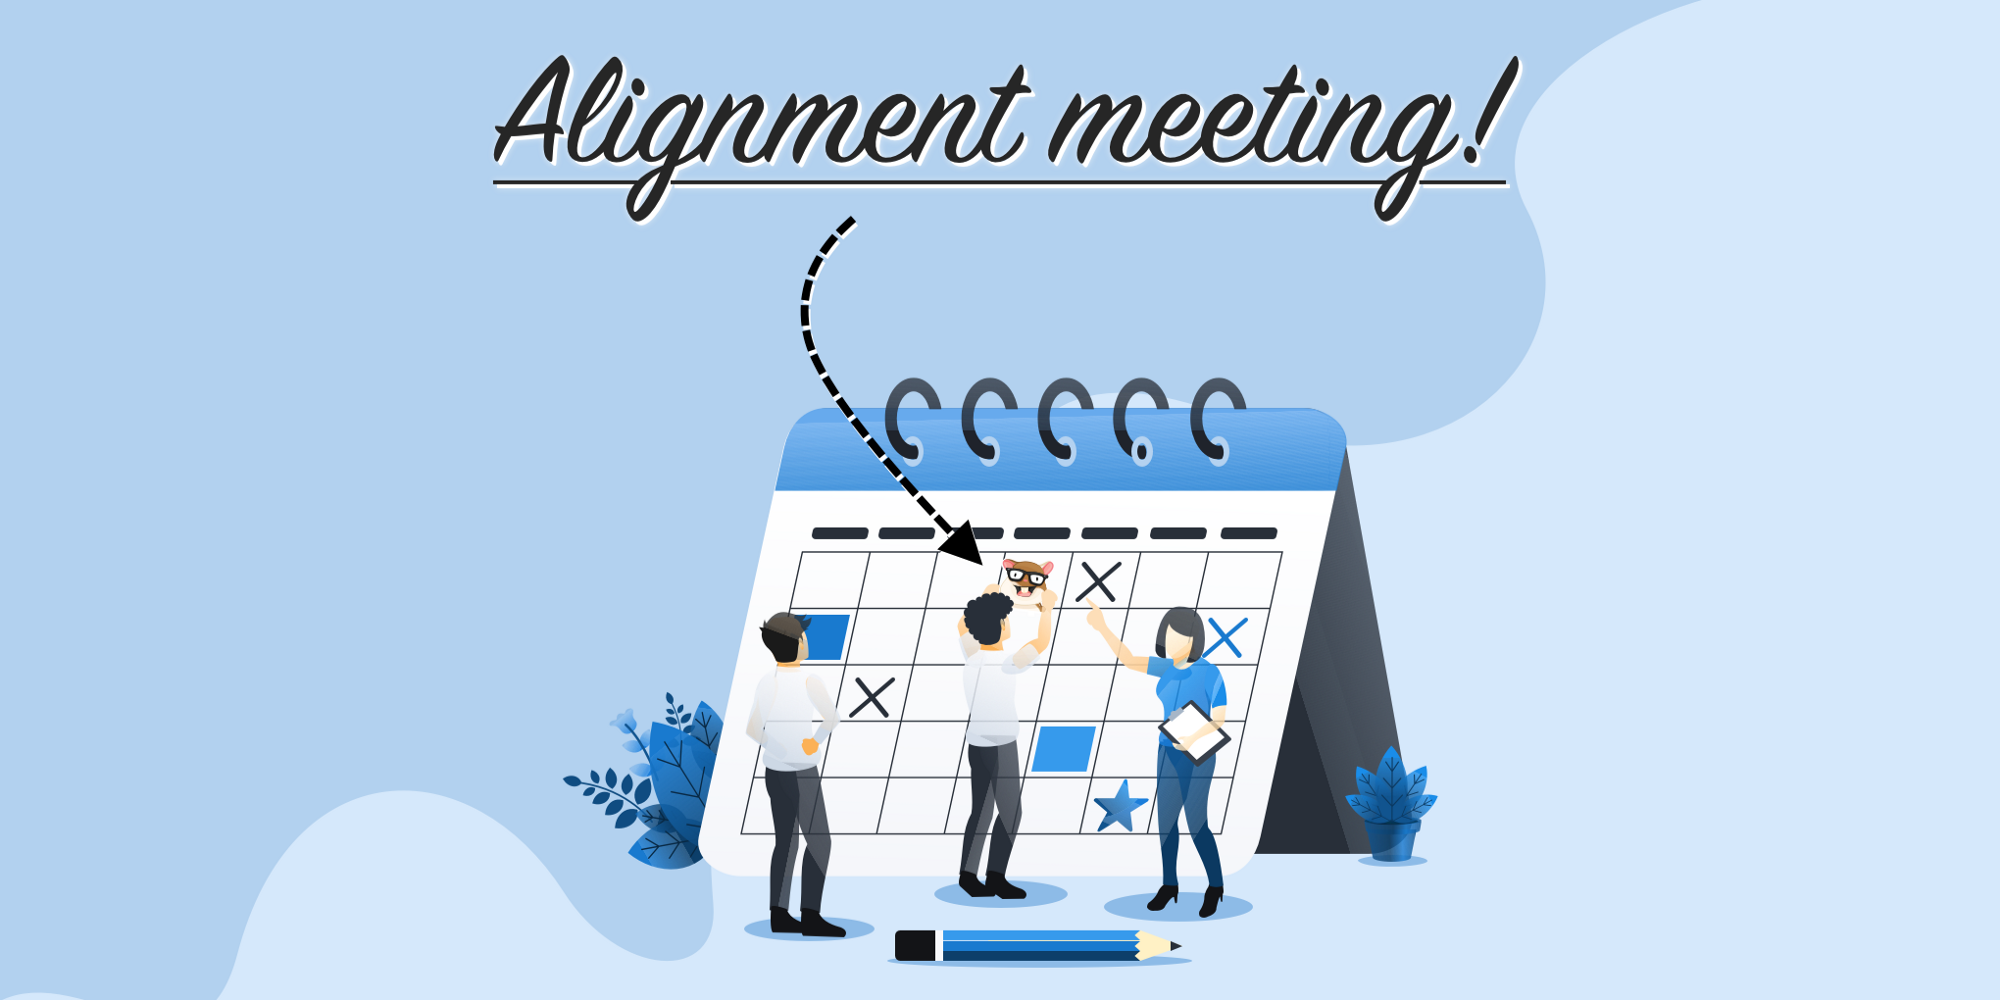 A bunch of people is adding Alignment meeting to a calendar. Instead of a regular cross icon they use Tomster's face.